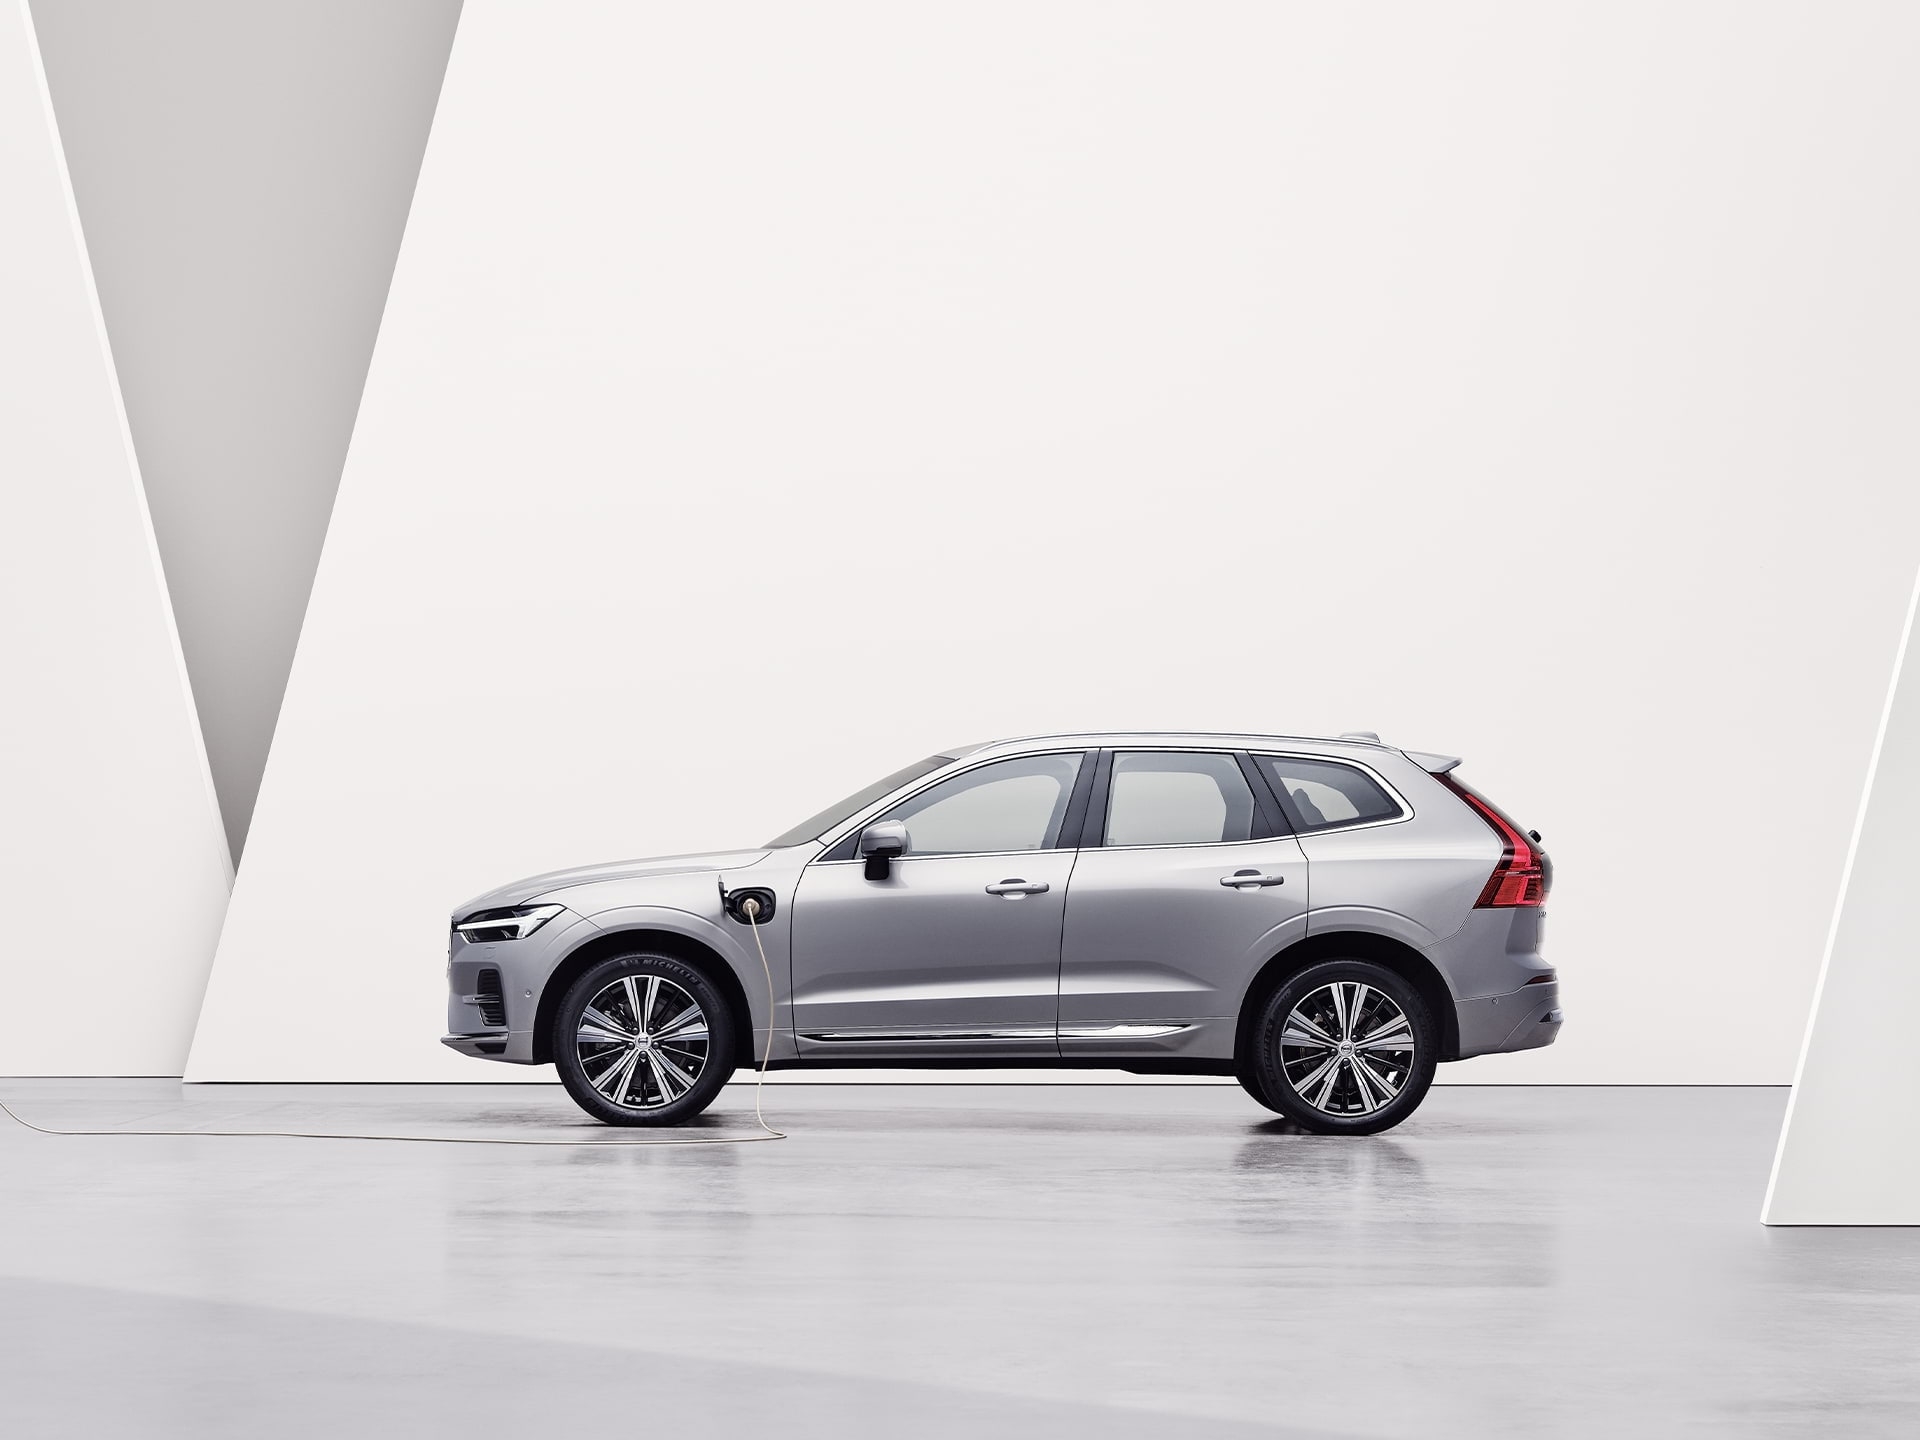 A silver Volvo XC60 Recharge, charging in a white surrounding.